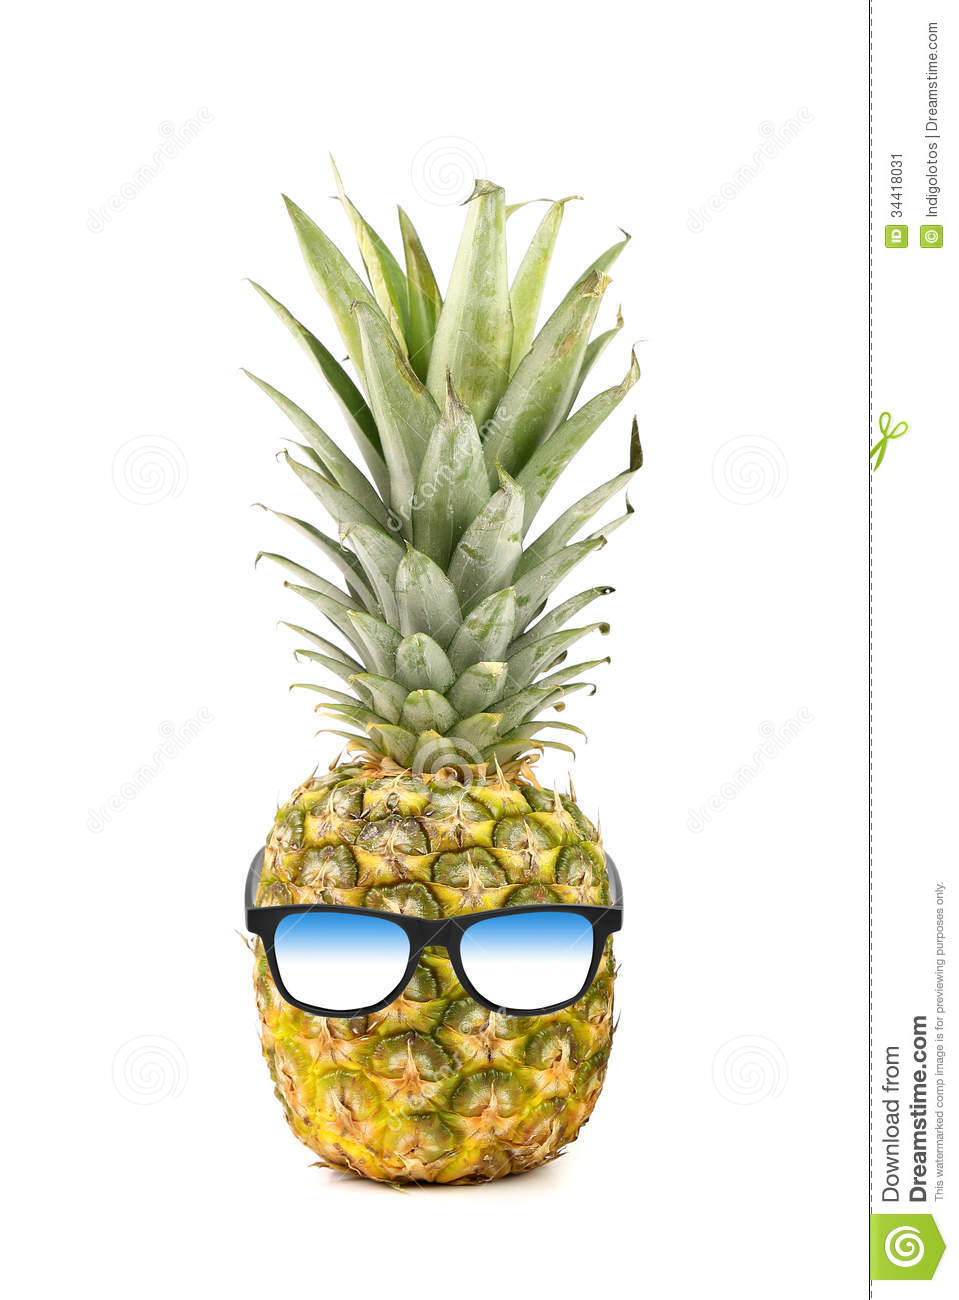 Funny Pineapple With Sunglasses Isolated On White Stock Image - Image ...